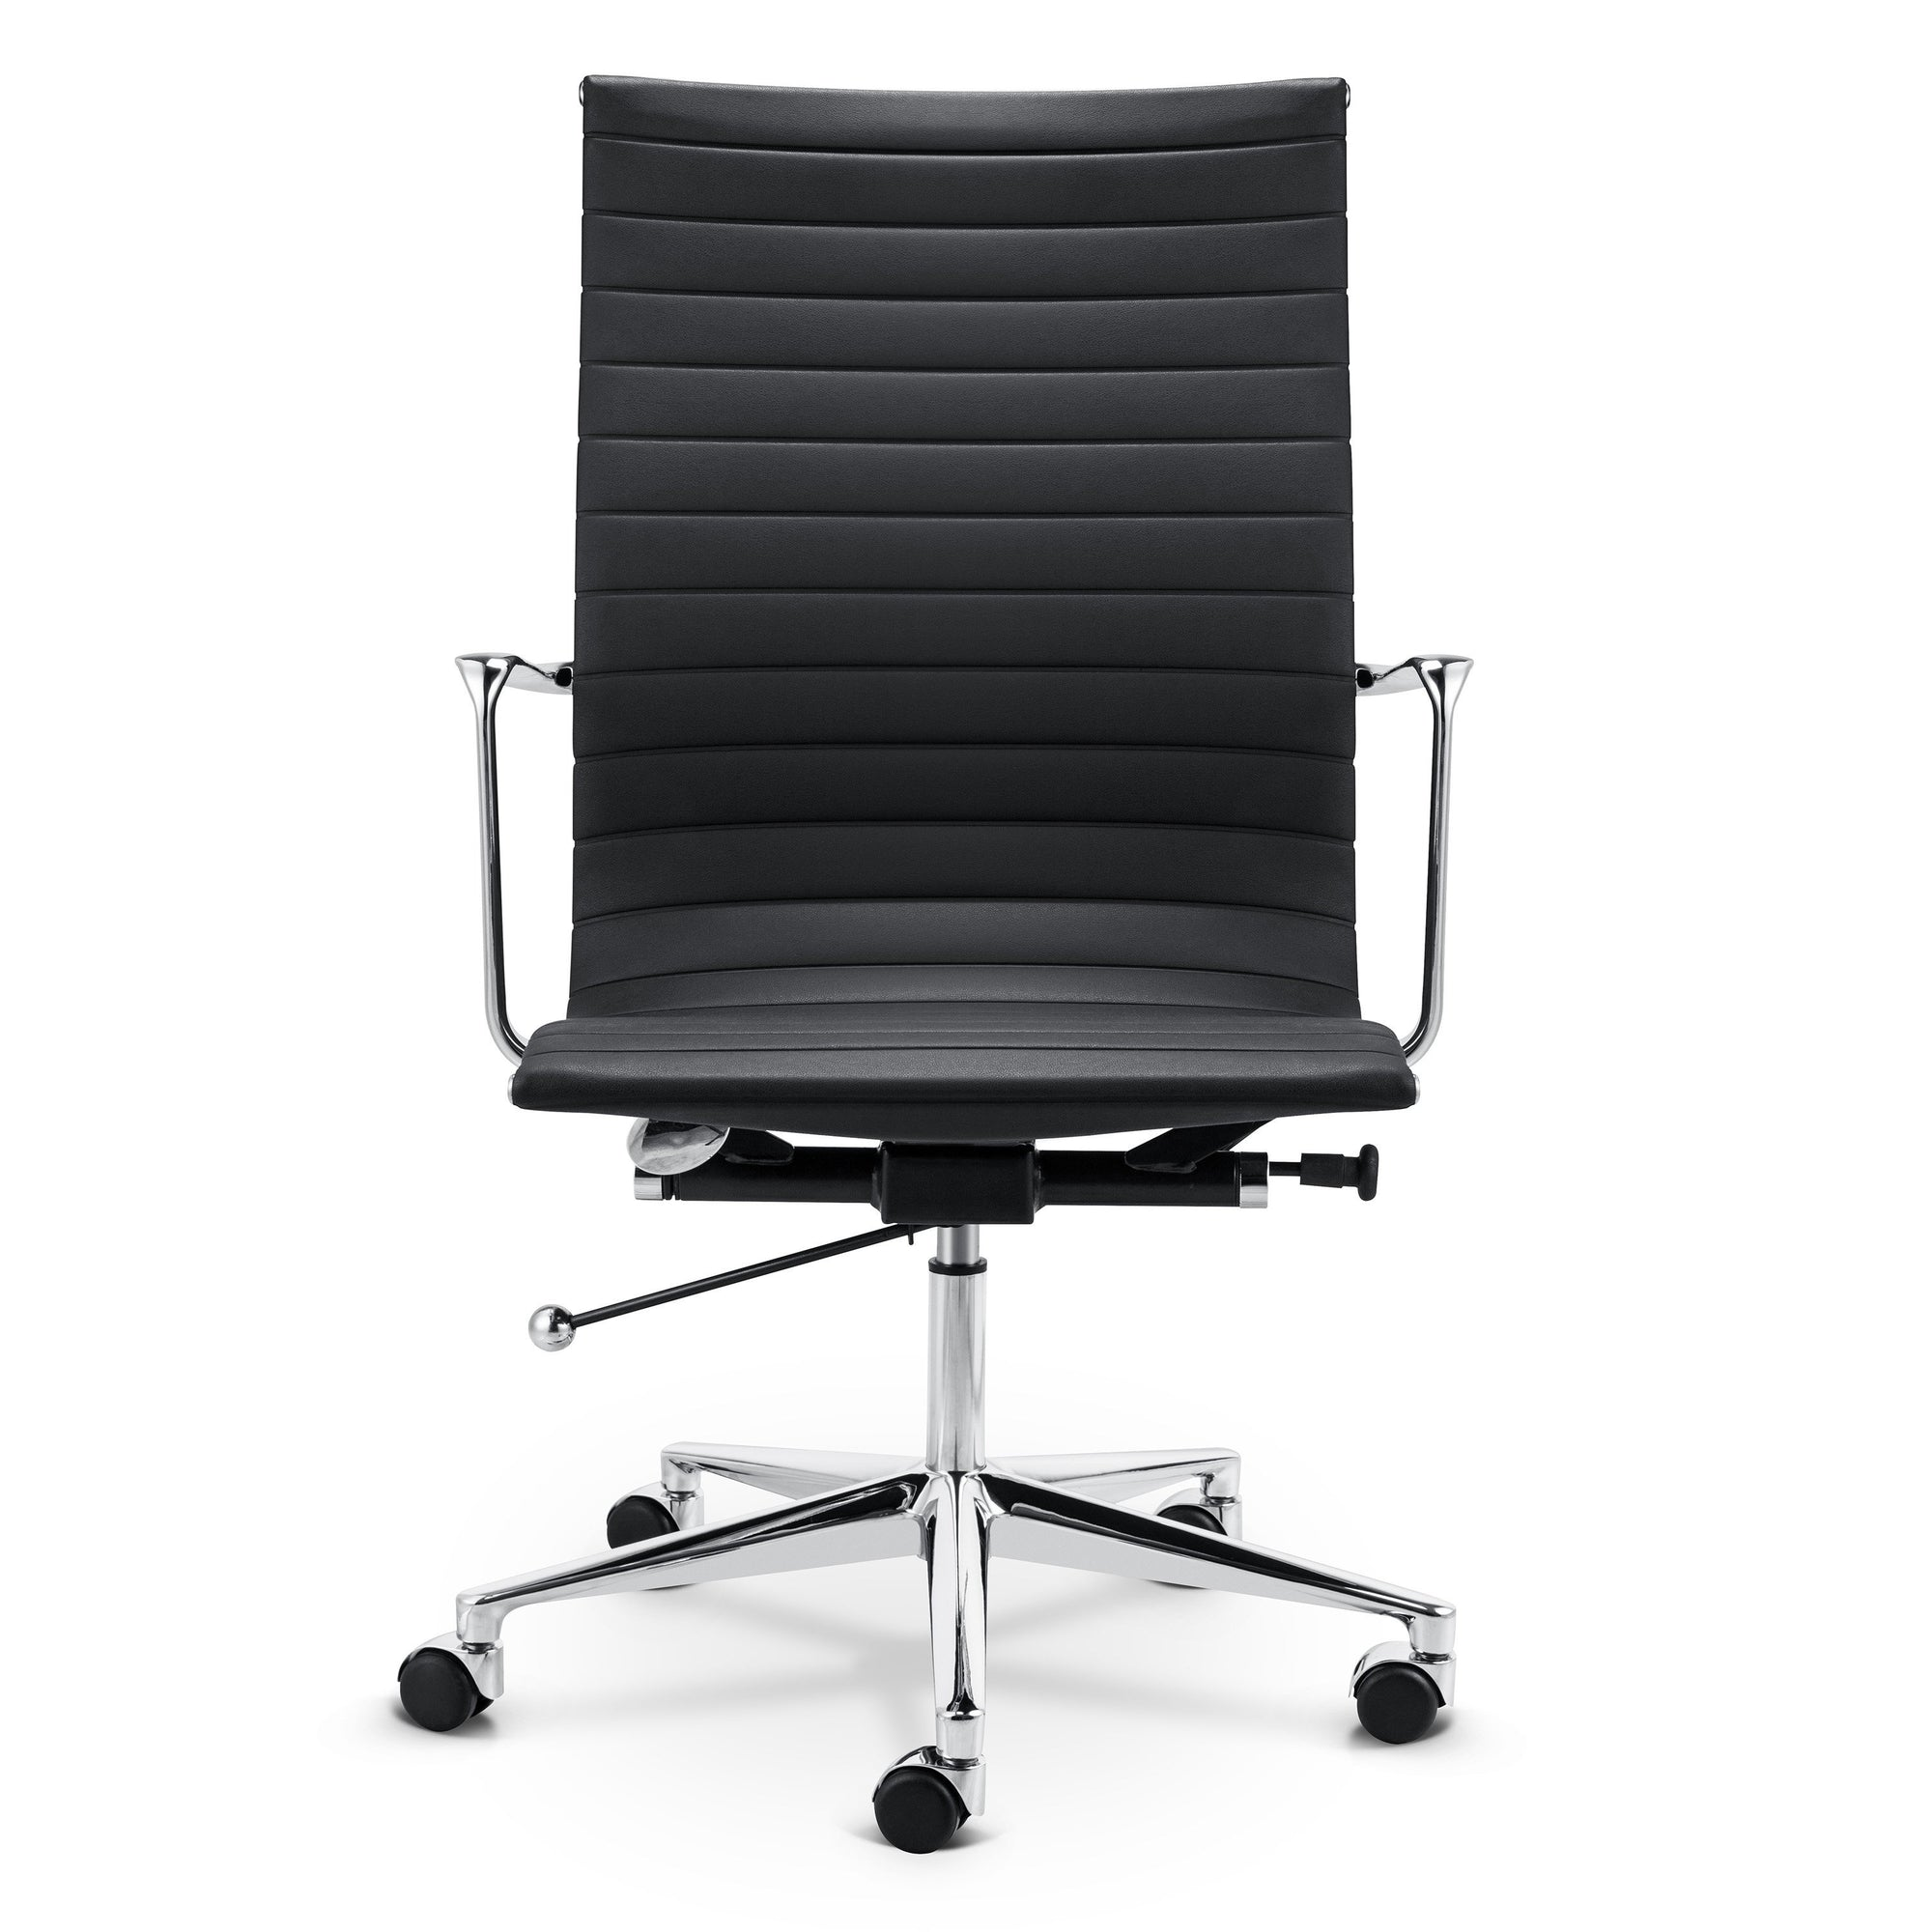 EM Office Chair Highback - Thinpad